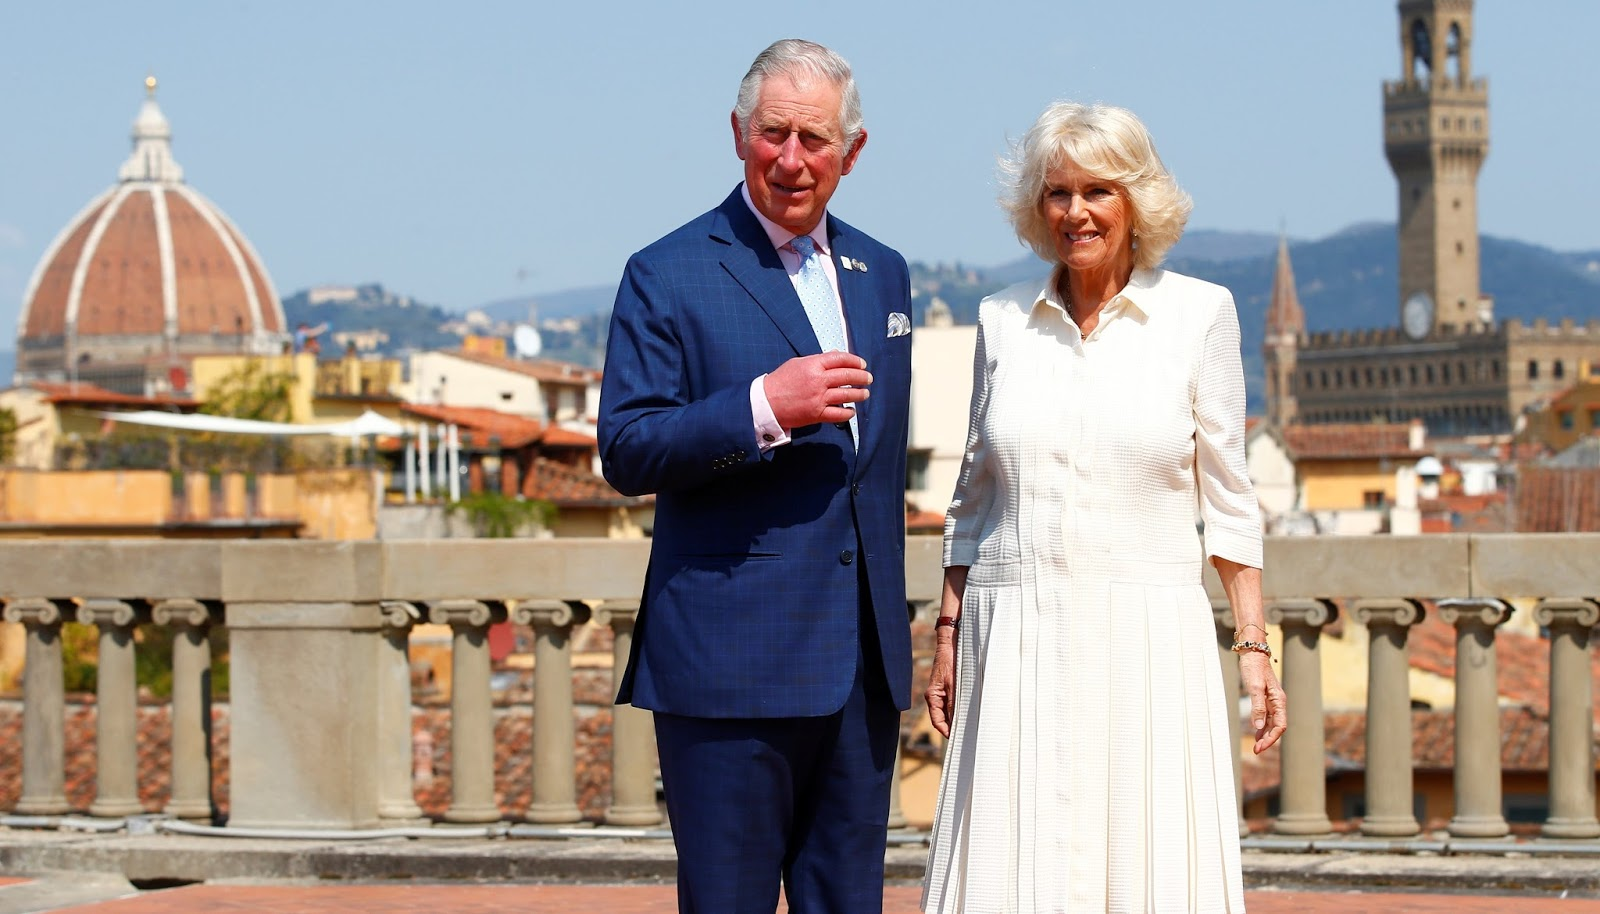 Britain's Prince Charles and his wife Camilla arrived in Singapore Monday to kick off an Asian tour.